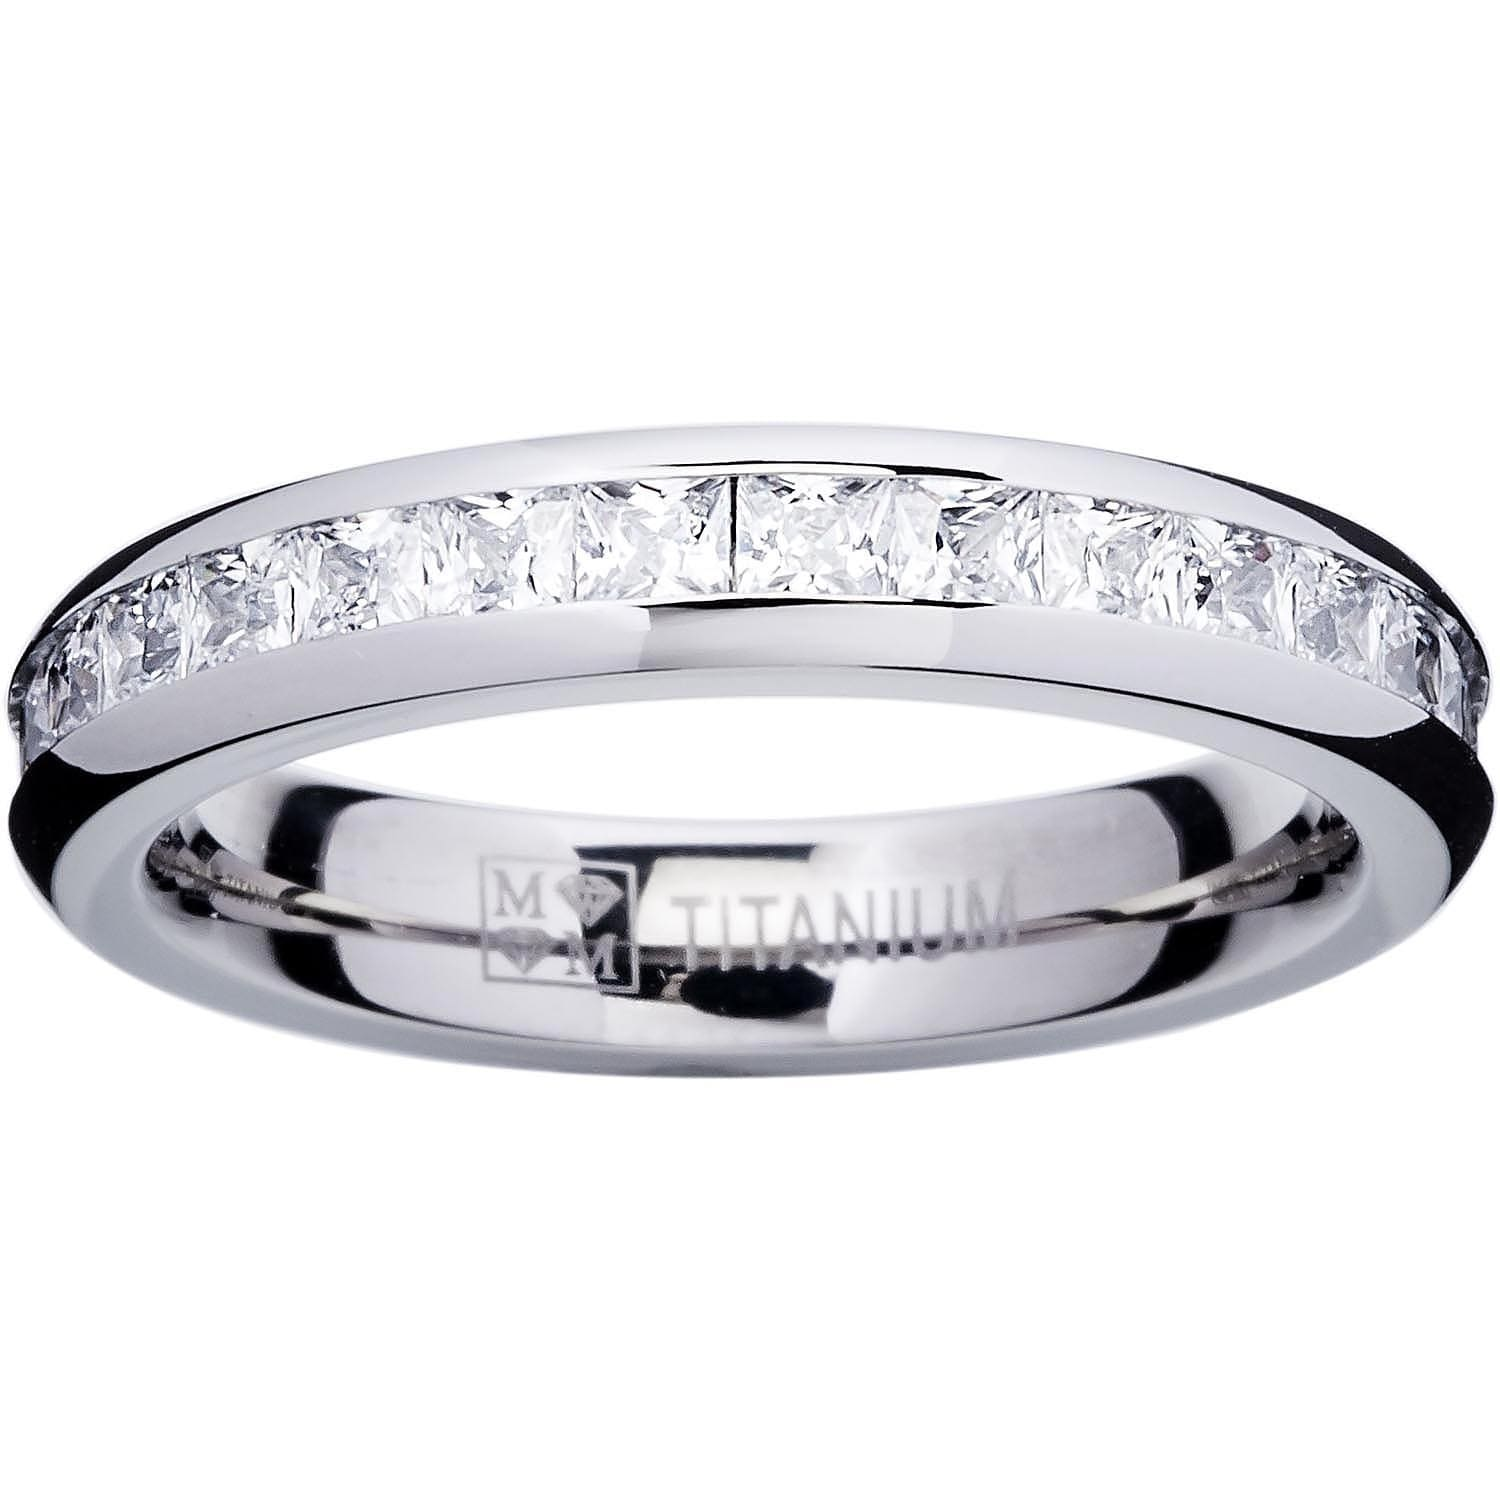 bands eternity free rose overstock zirconia white today and sterling product silver modern jewelry band suzy shipping watches champagne cubic levian